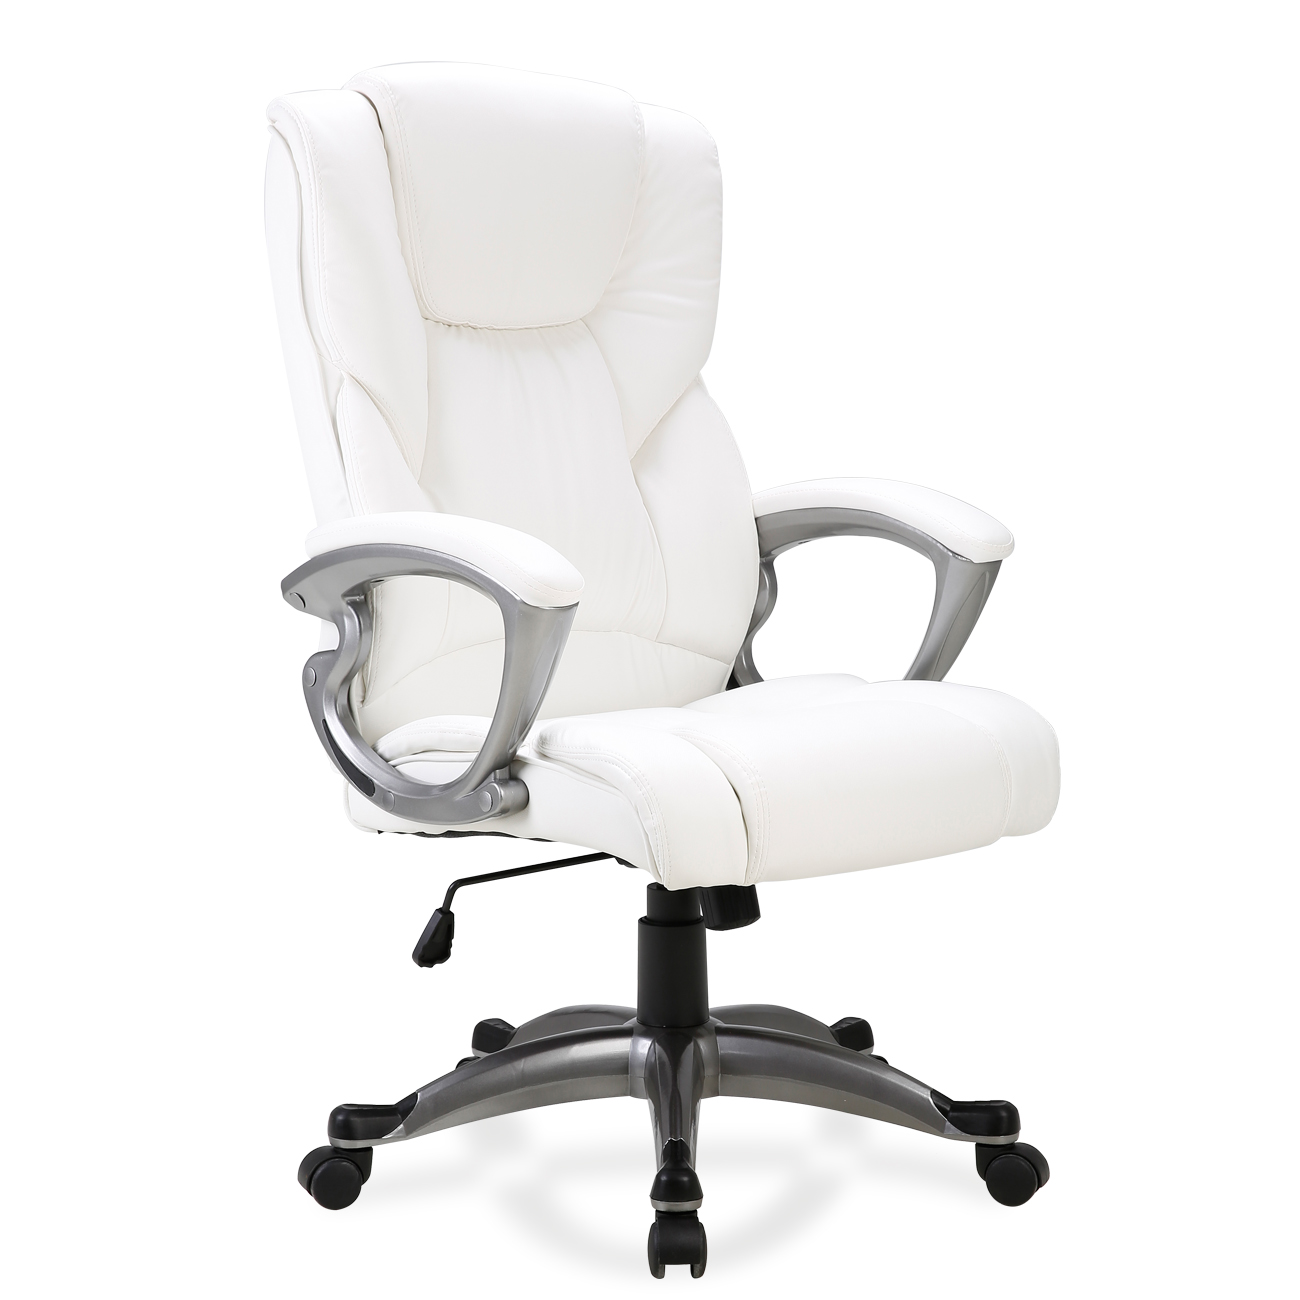 high quality office chairs ergonomic fishing chair adjustable legs executive back task computer